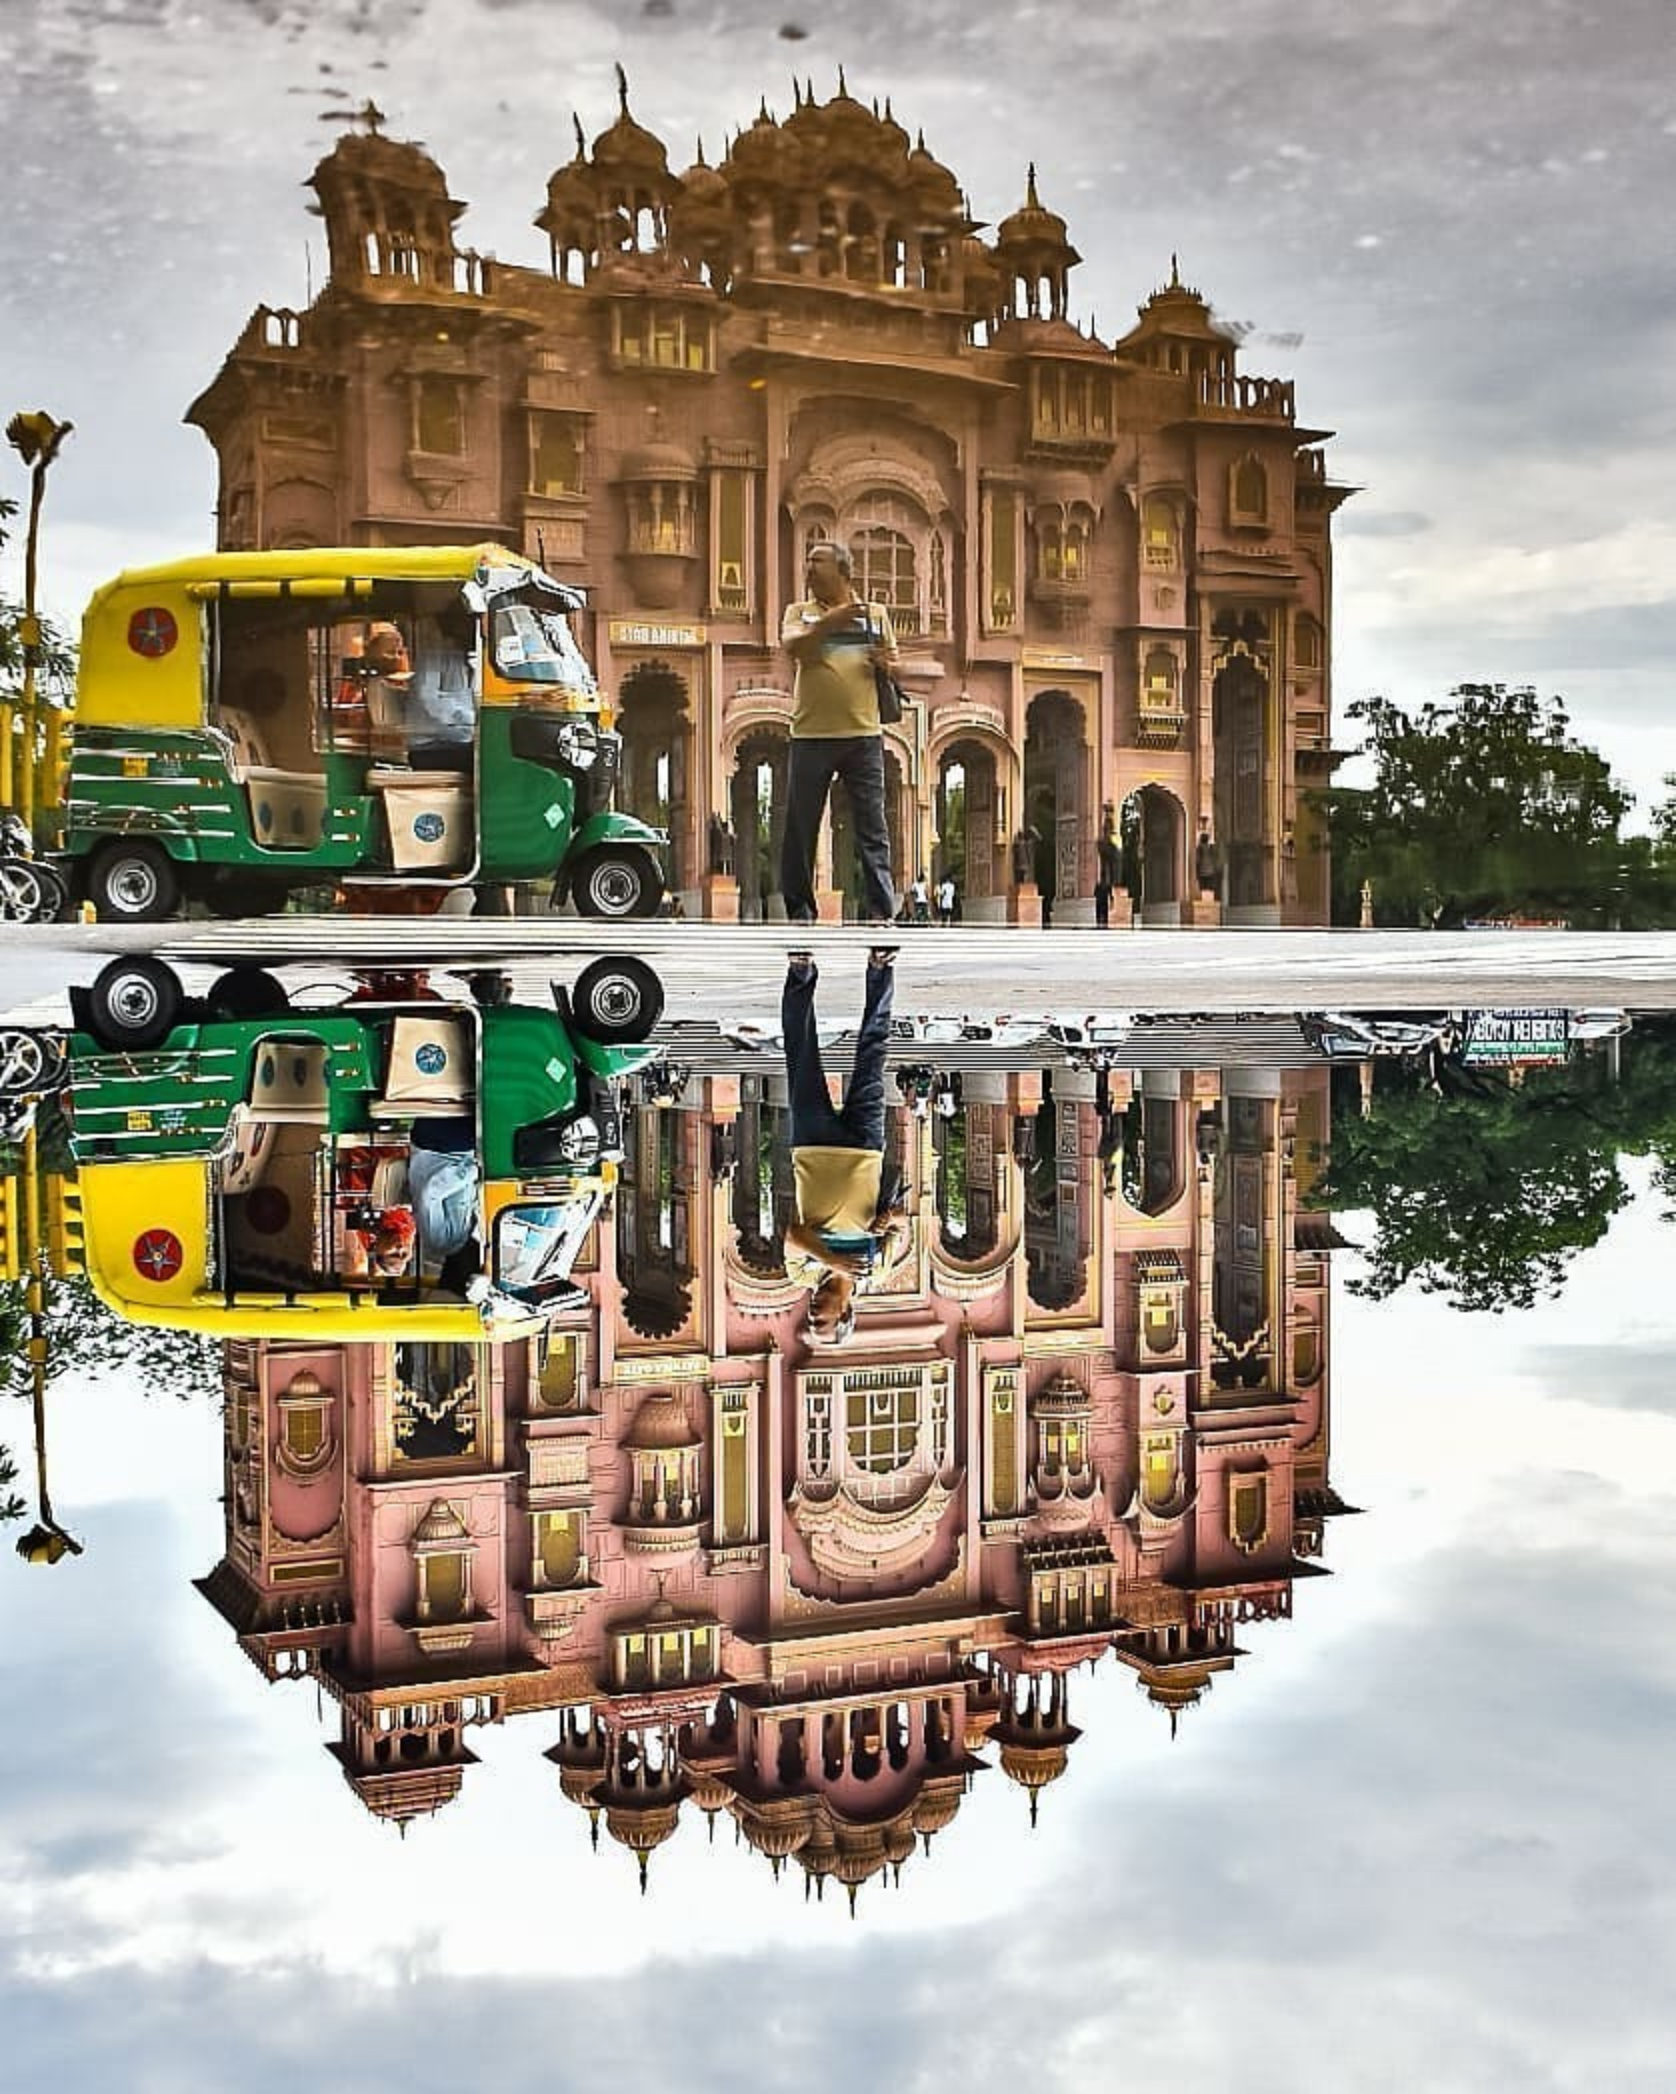 An autoriksha in front of a monument in Jaipur.